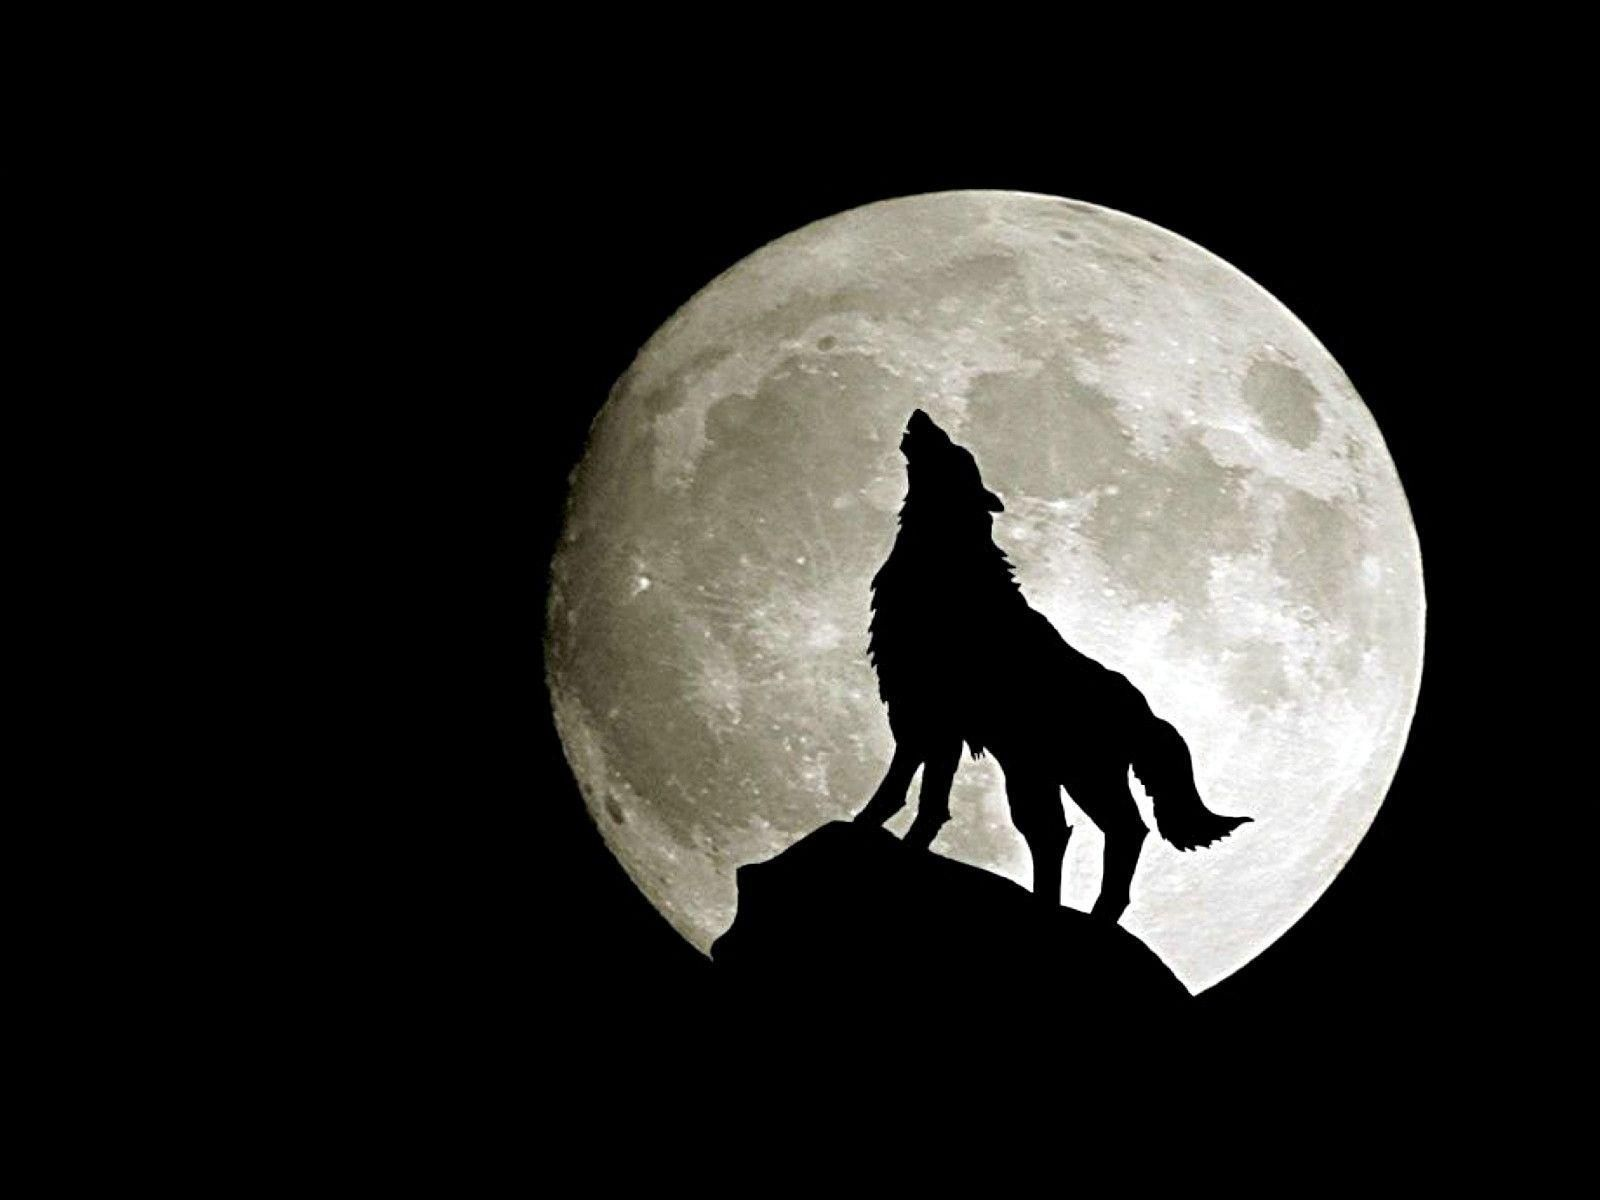 Wolf Free Hd Wallpapers And Backgrounds Download 47 Http Www Urdunewtrend Com Hd Wallpapers Animal Wolf Wolf Wolf Wallpaper Wolf Hd Wallpapers Wolf Images